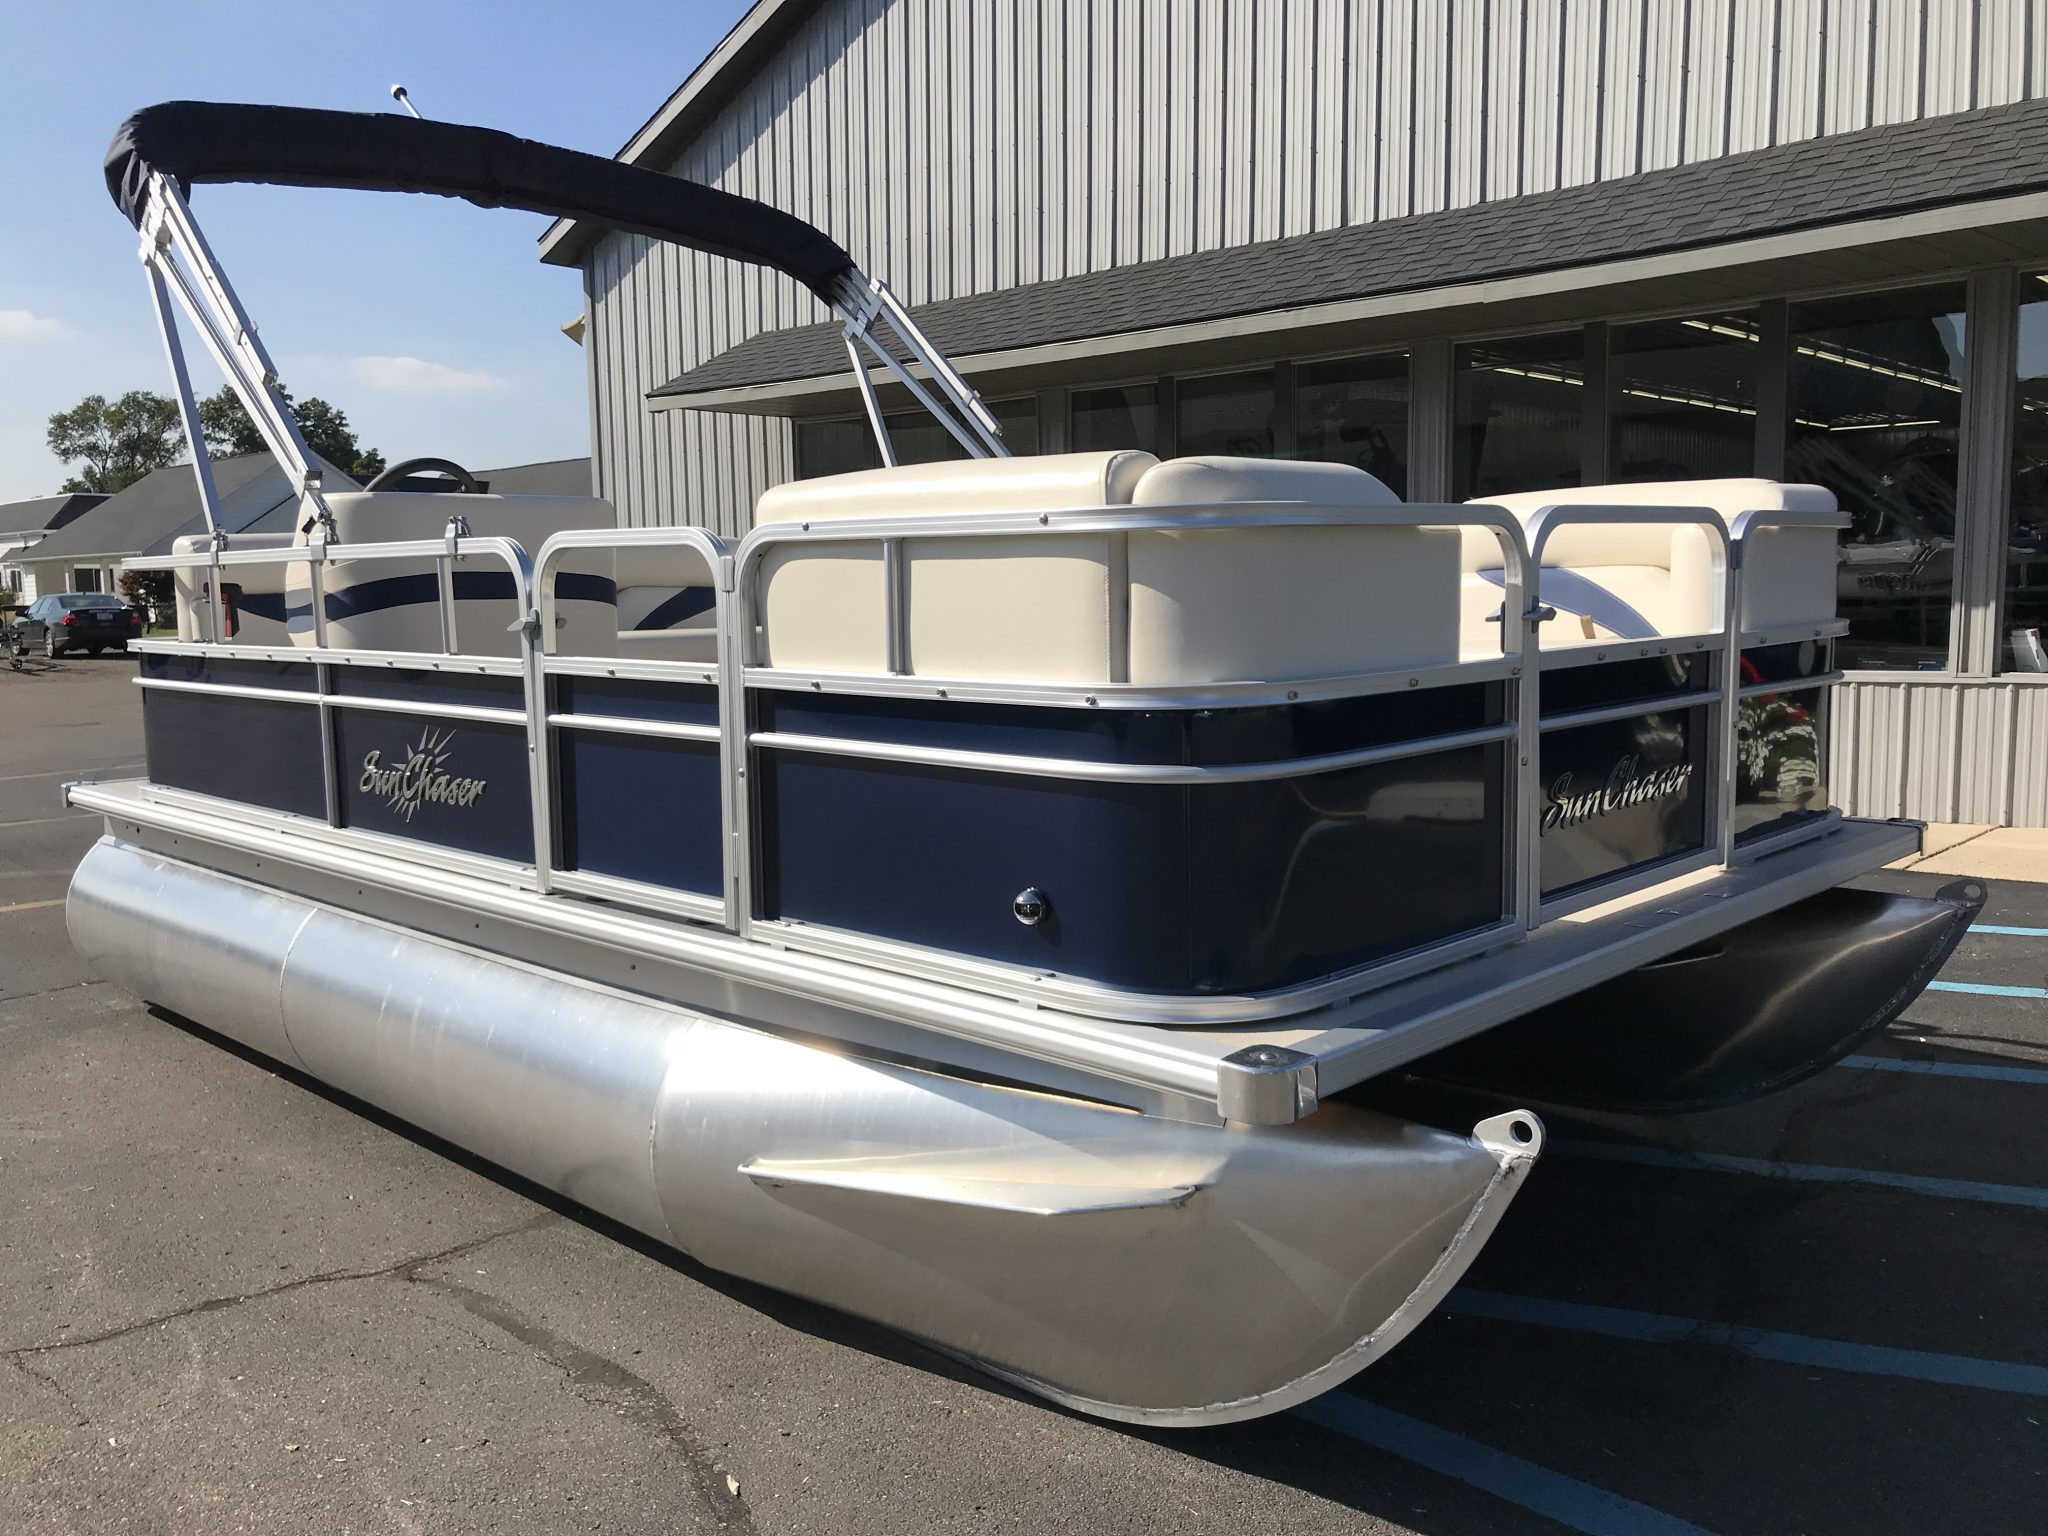 2019 SunChaser 816 Cruise Blue 2